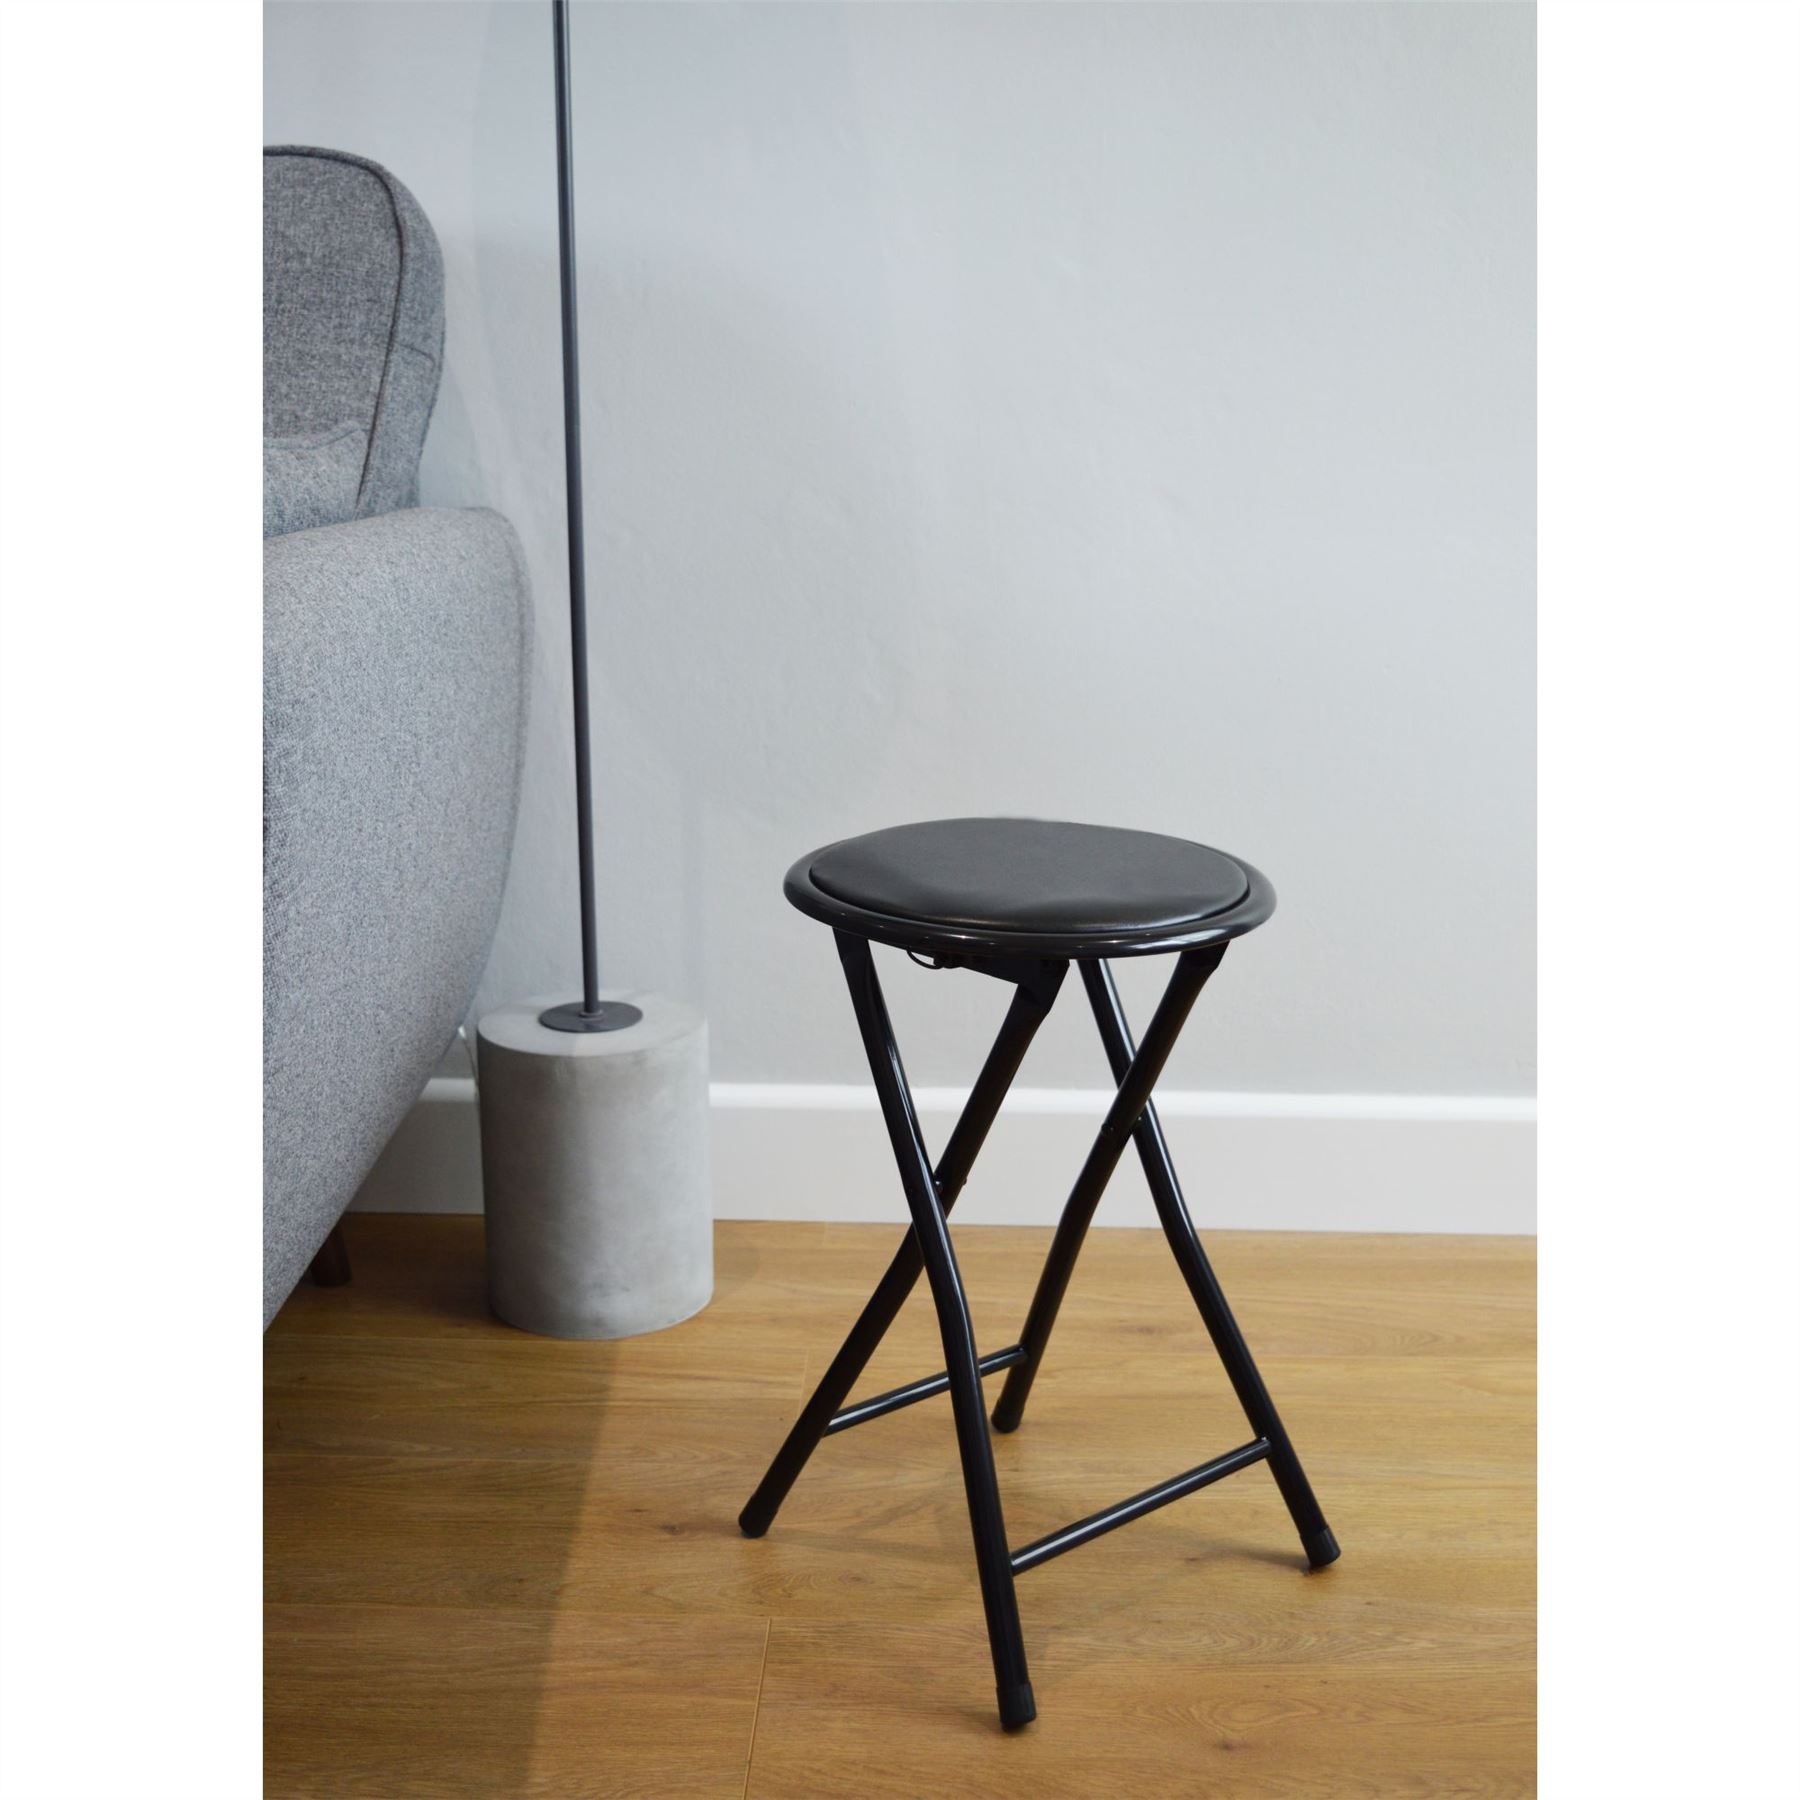 Padded Stool Round Folding Padded Stool Office Kitchen Breakfast